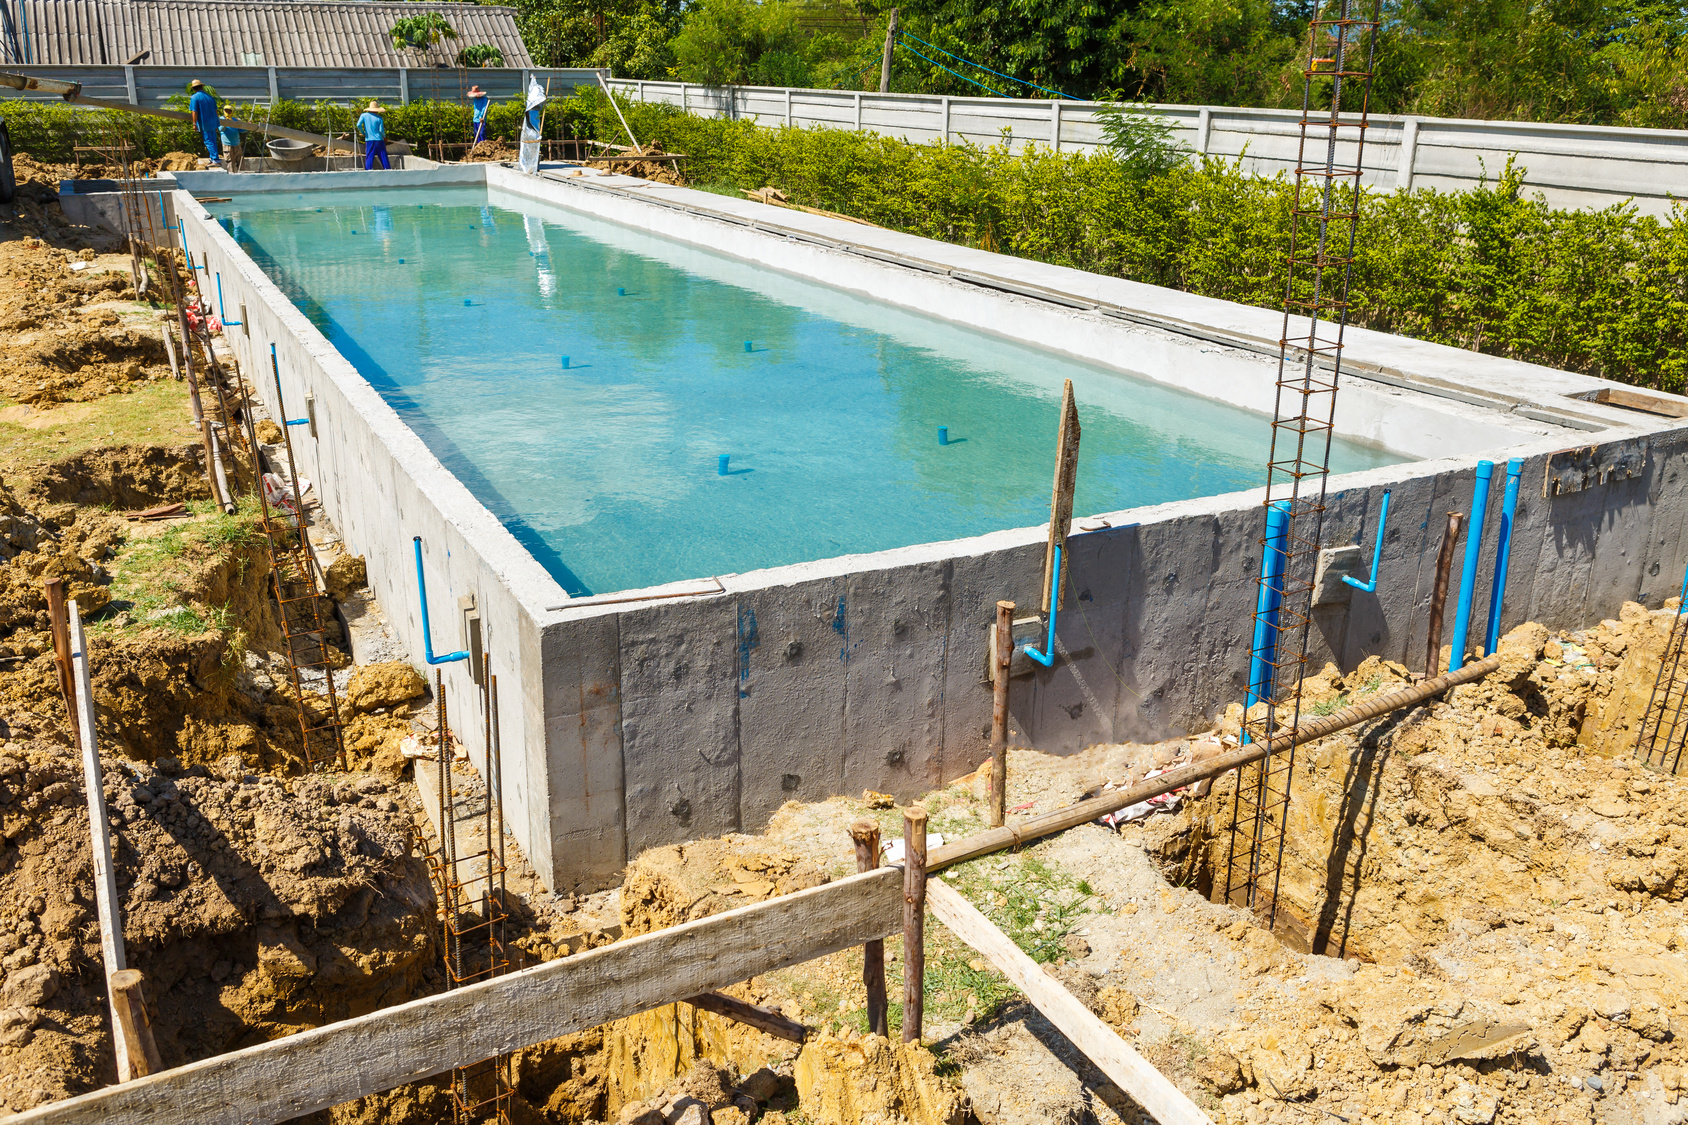 Construire une piscine b ton traditionnelle en kit for Construction piscine traditionnelle